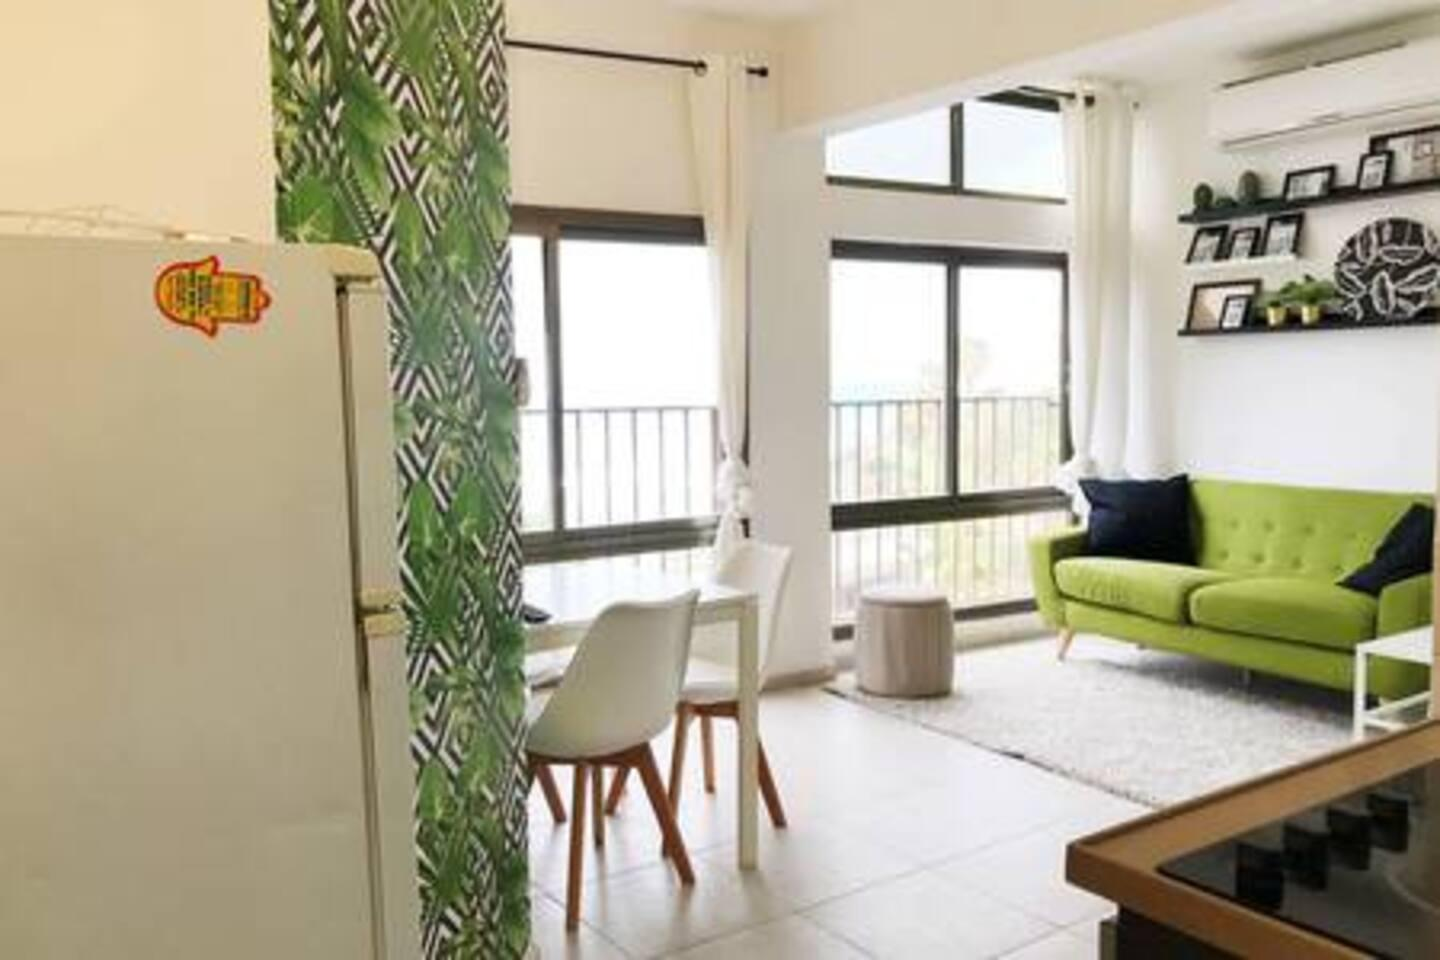 Sea View tropical designed apt in front of Hilton photo 22805978